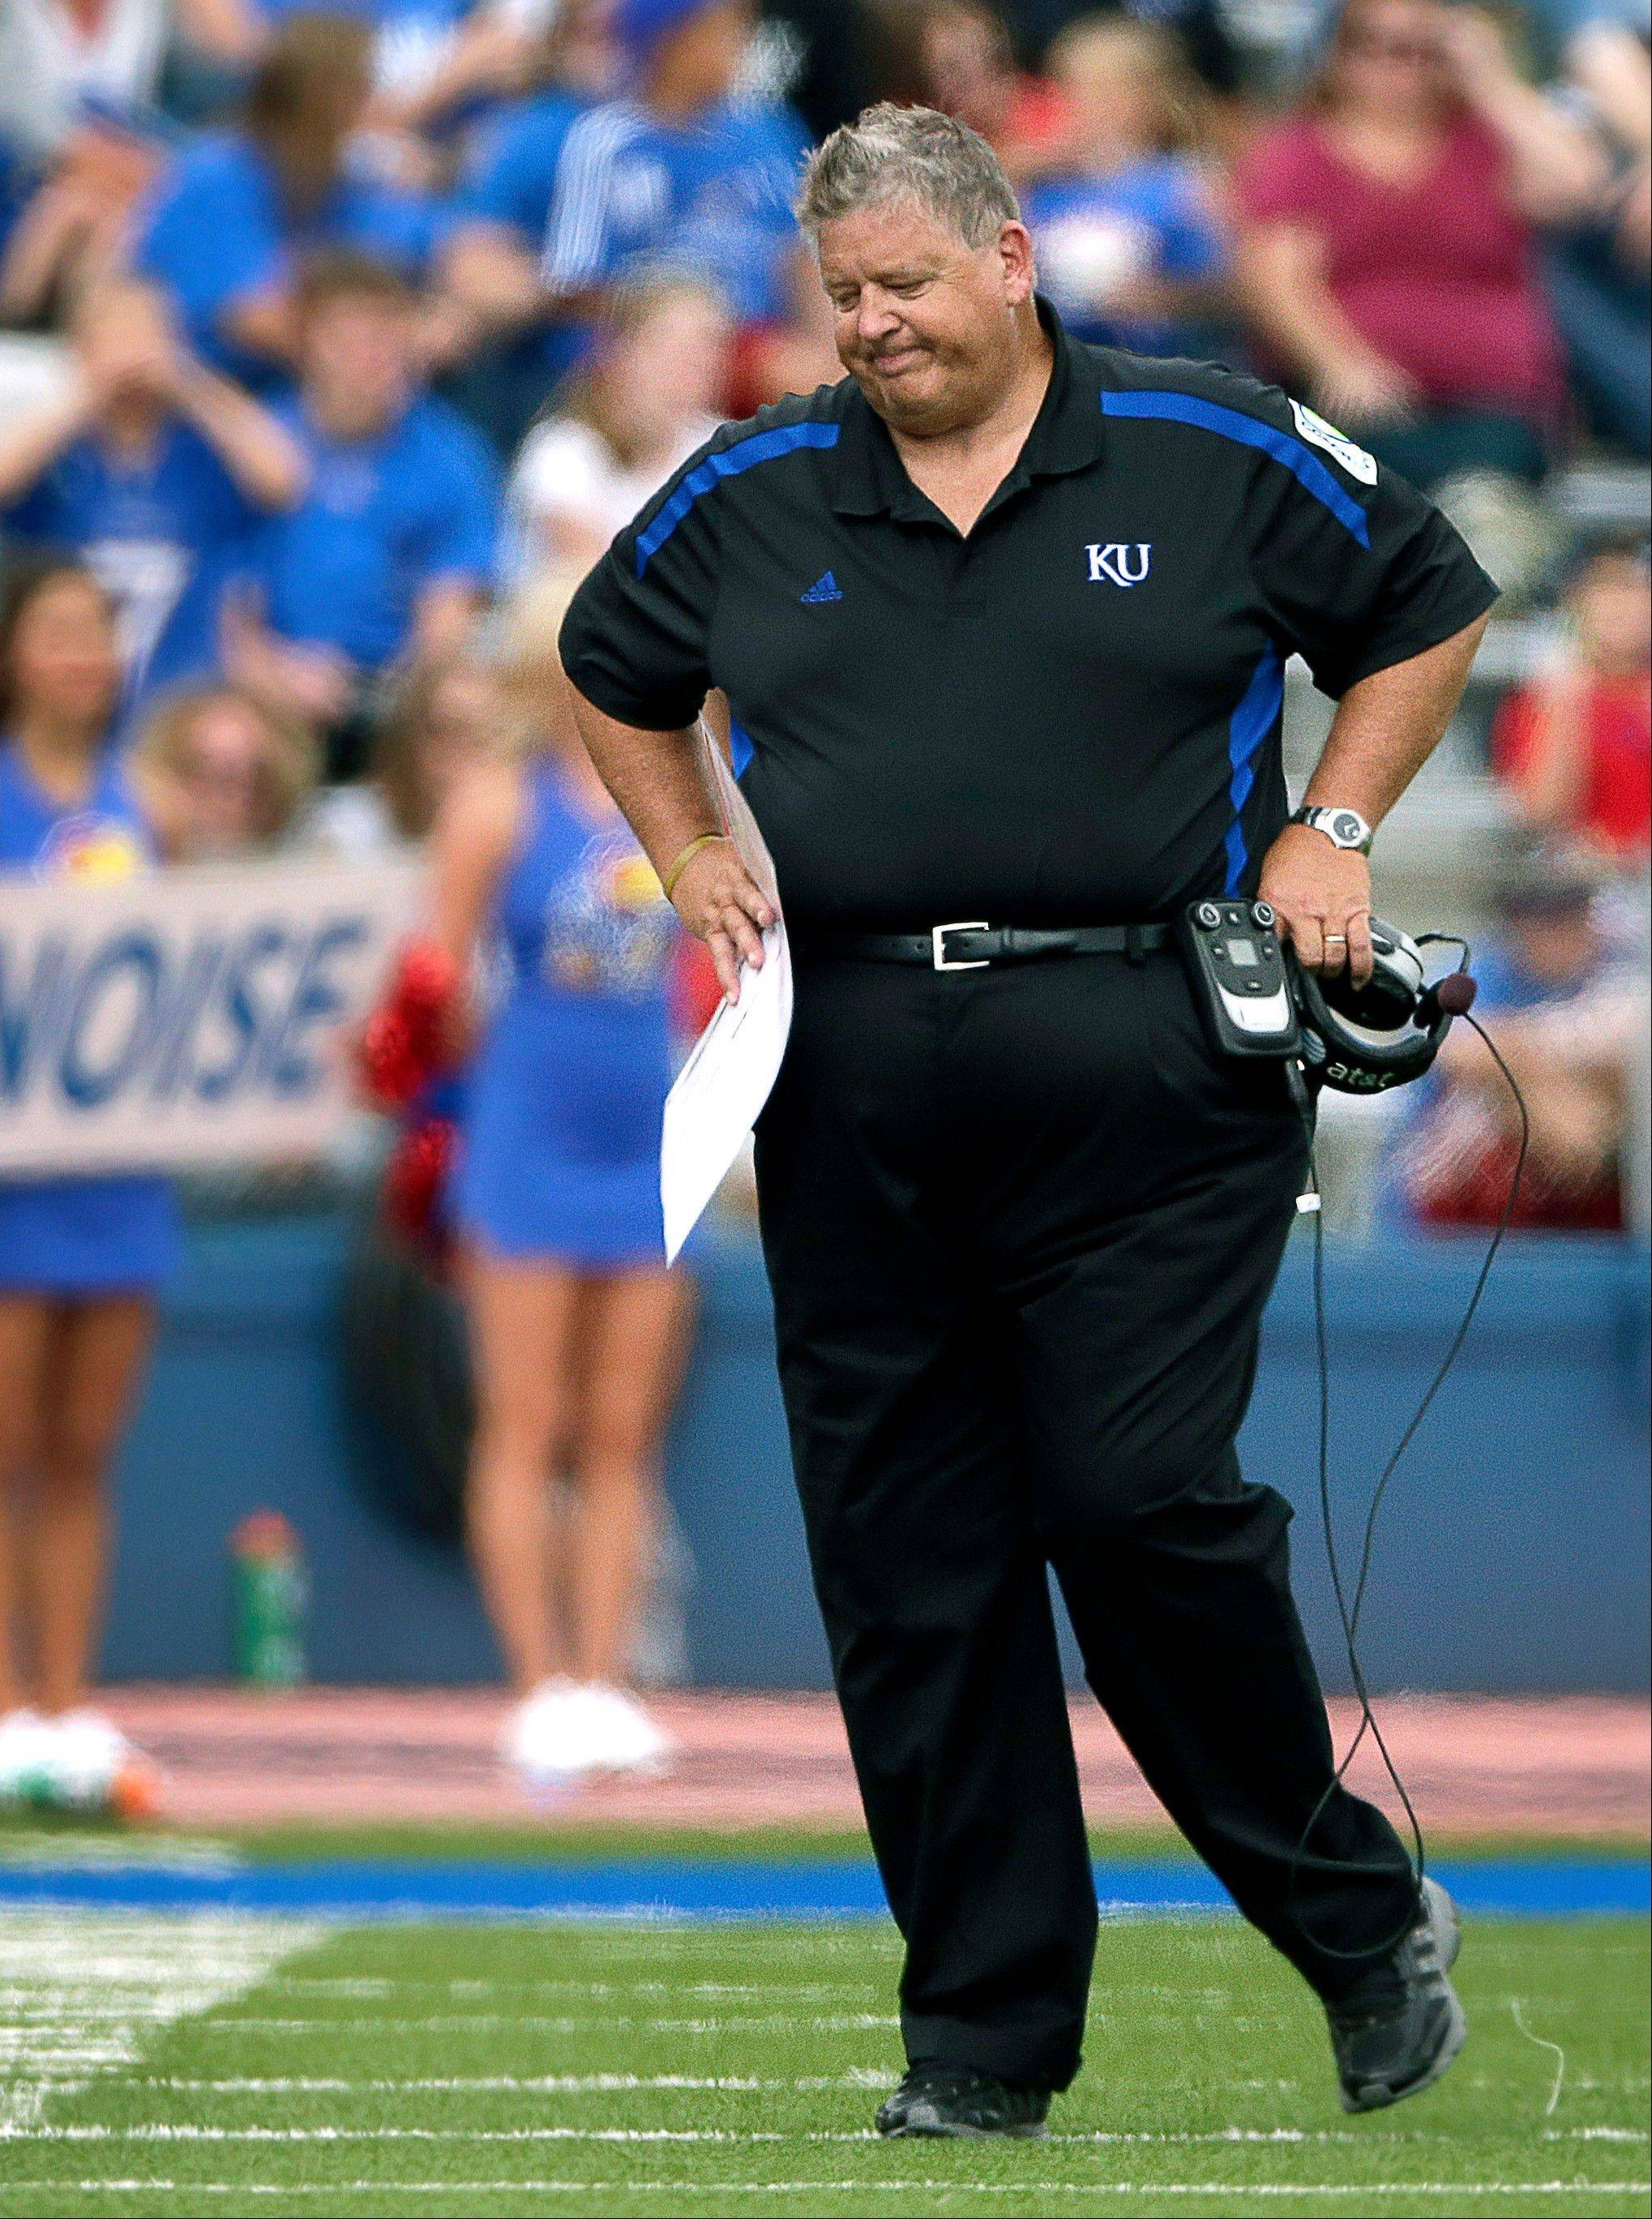 Kansas head coach Charlie Weis reacts to a penalty Saturday during the second half against TCU in Lawrence, Kan. TCU won the game 20-6.